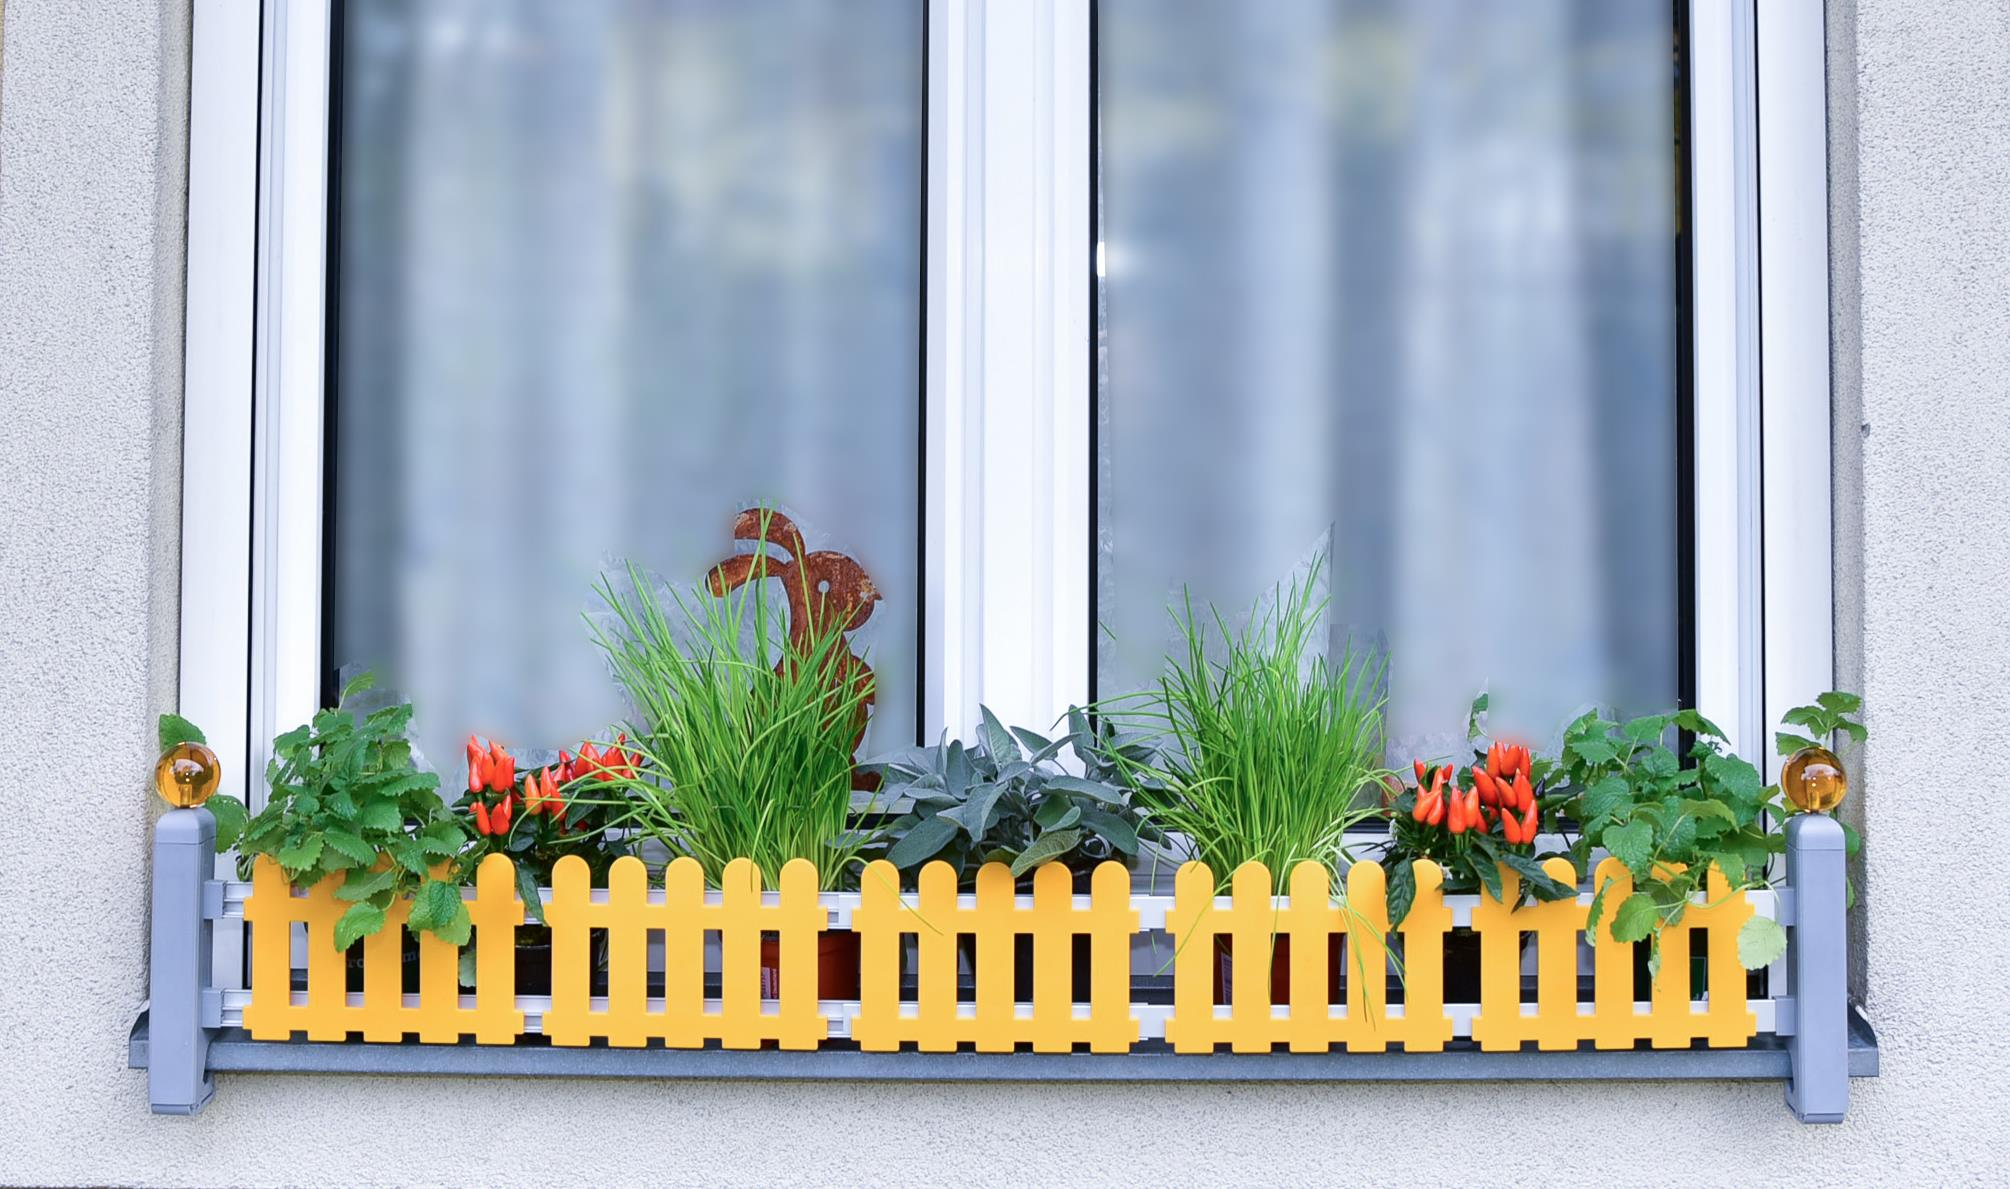 Masu planter holder for window sill without drilling or sawing